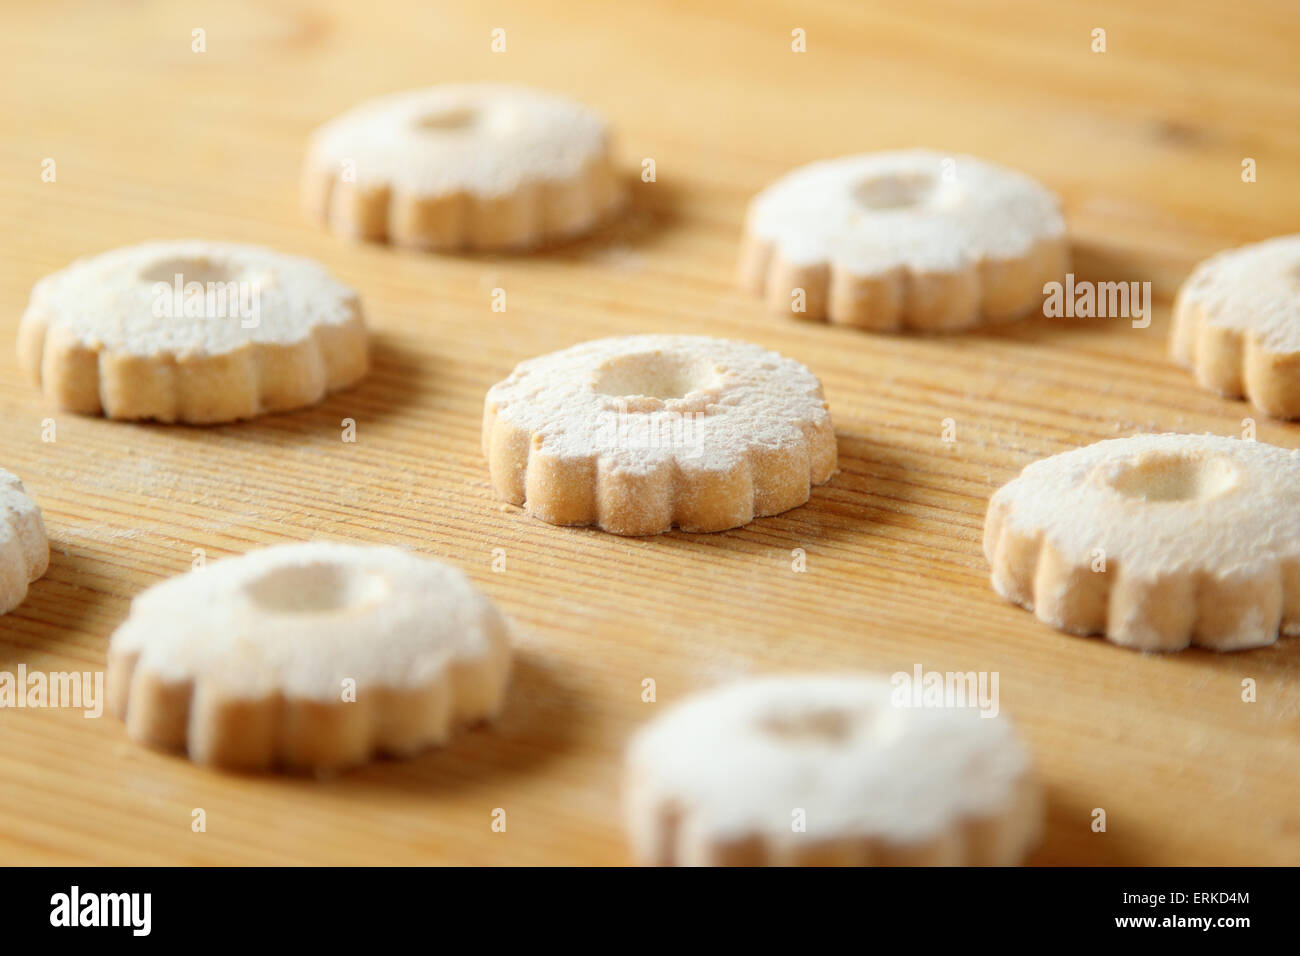 Regular arrangement of italian canestrelli biscuits on a wooden table with powdered sugar on the surface - Stock Image